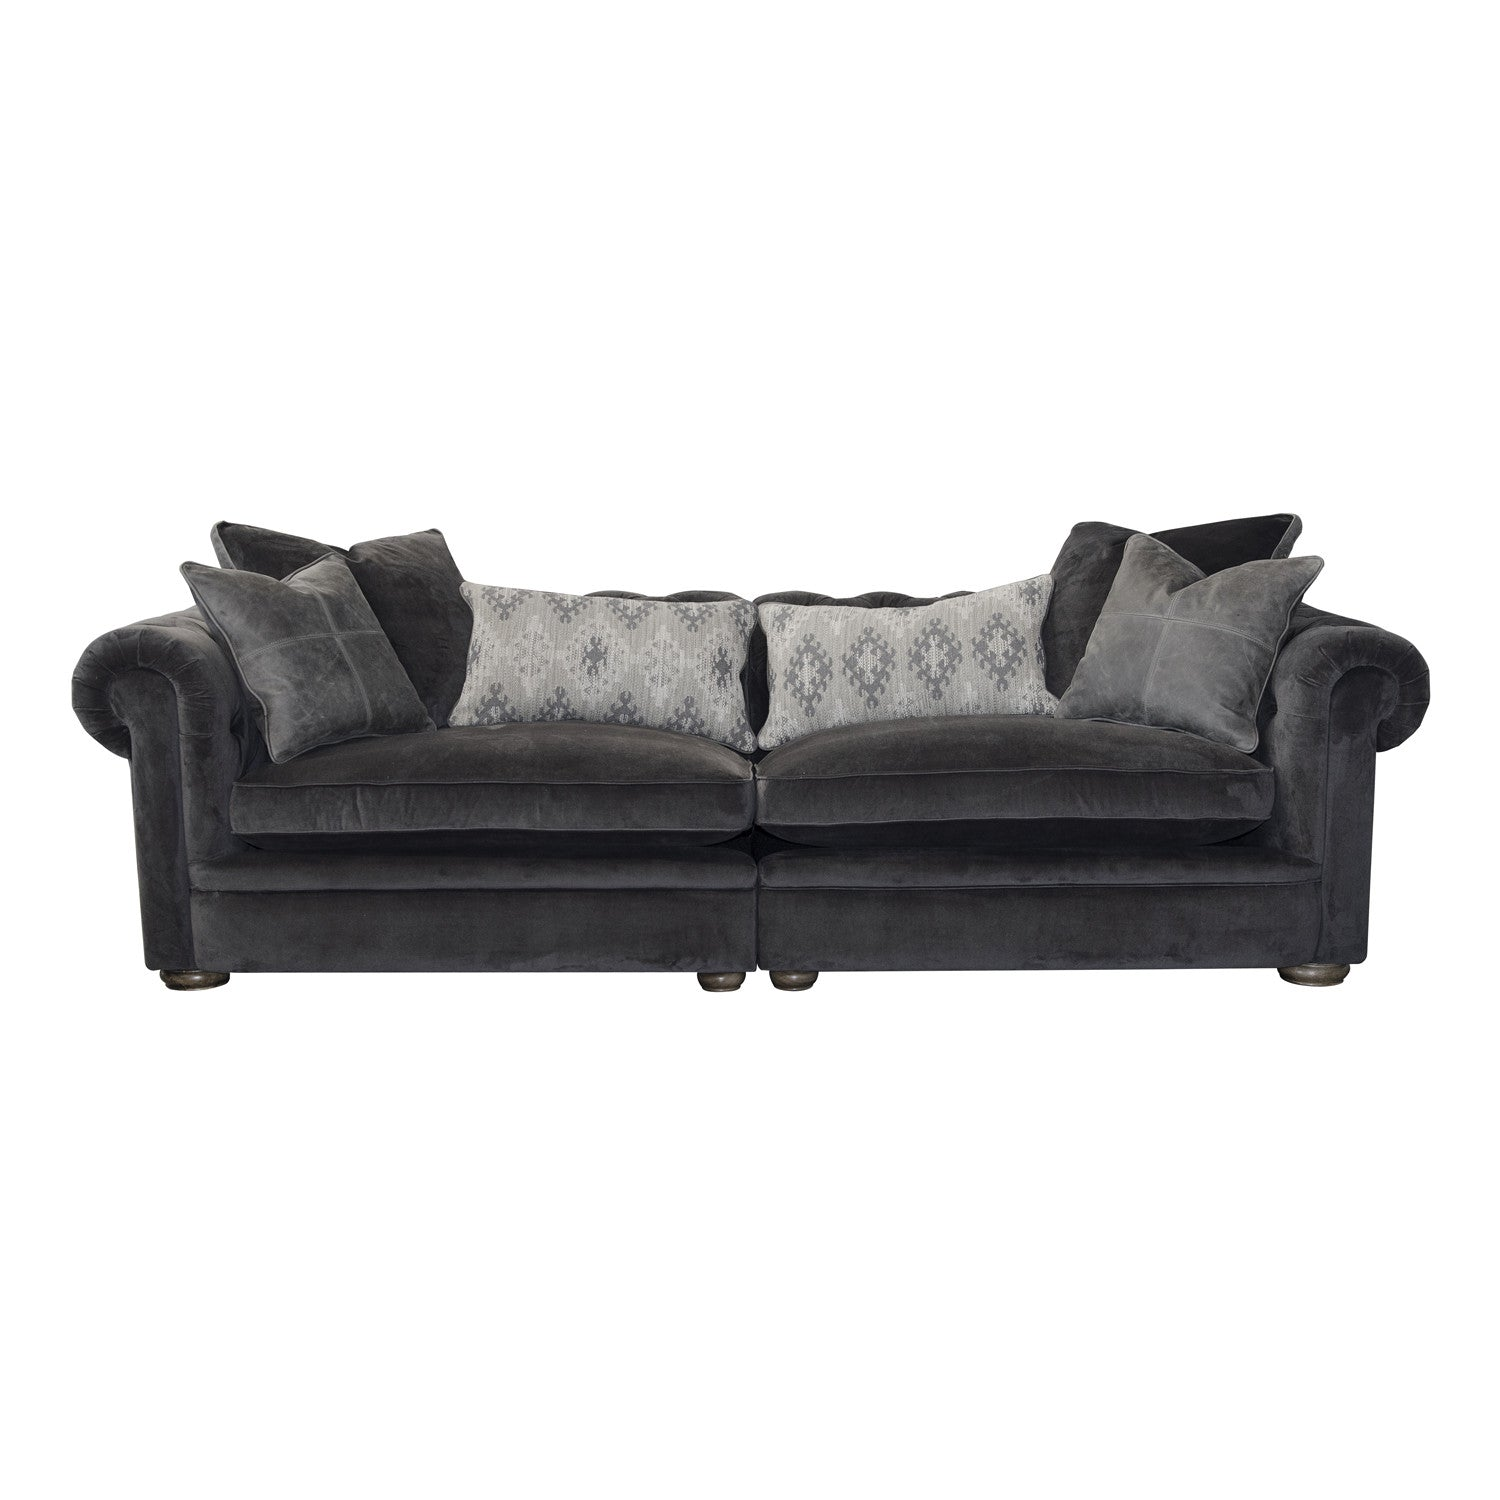 Chamberlain Deluxe - Maxi Sofa (2 Pieces) - Better Furniture Norwich & Great Yarmouth